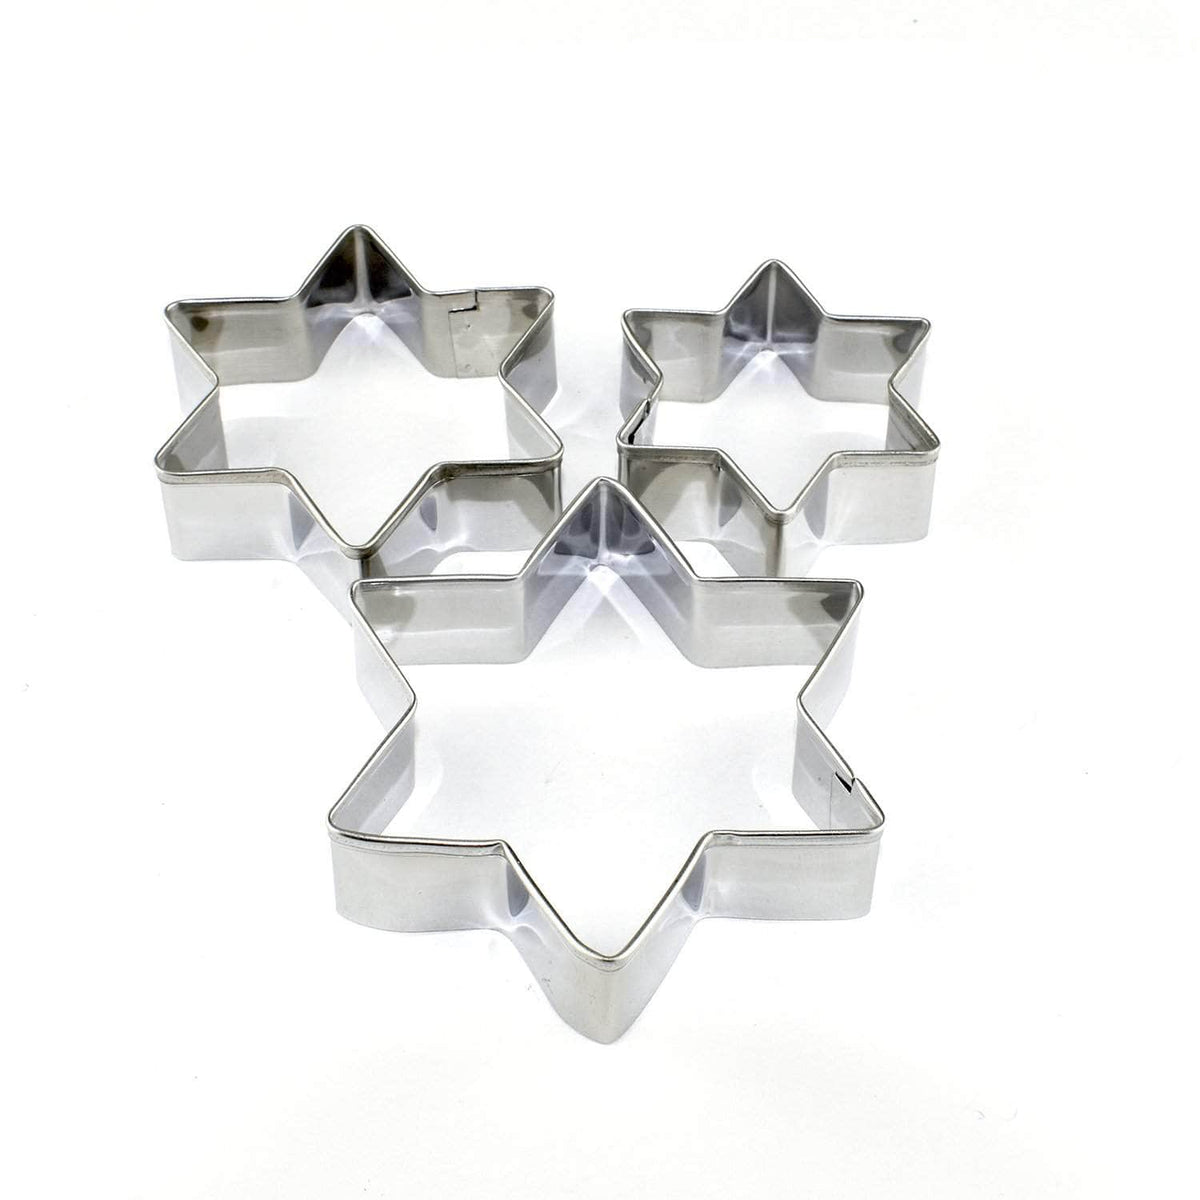 *New* Star biscuit cutters, set of 3